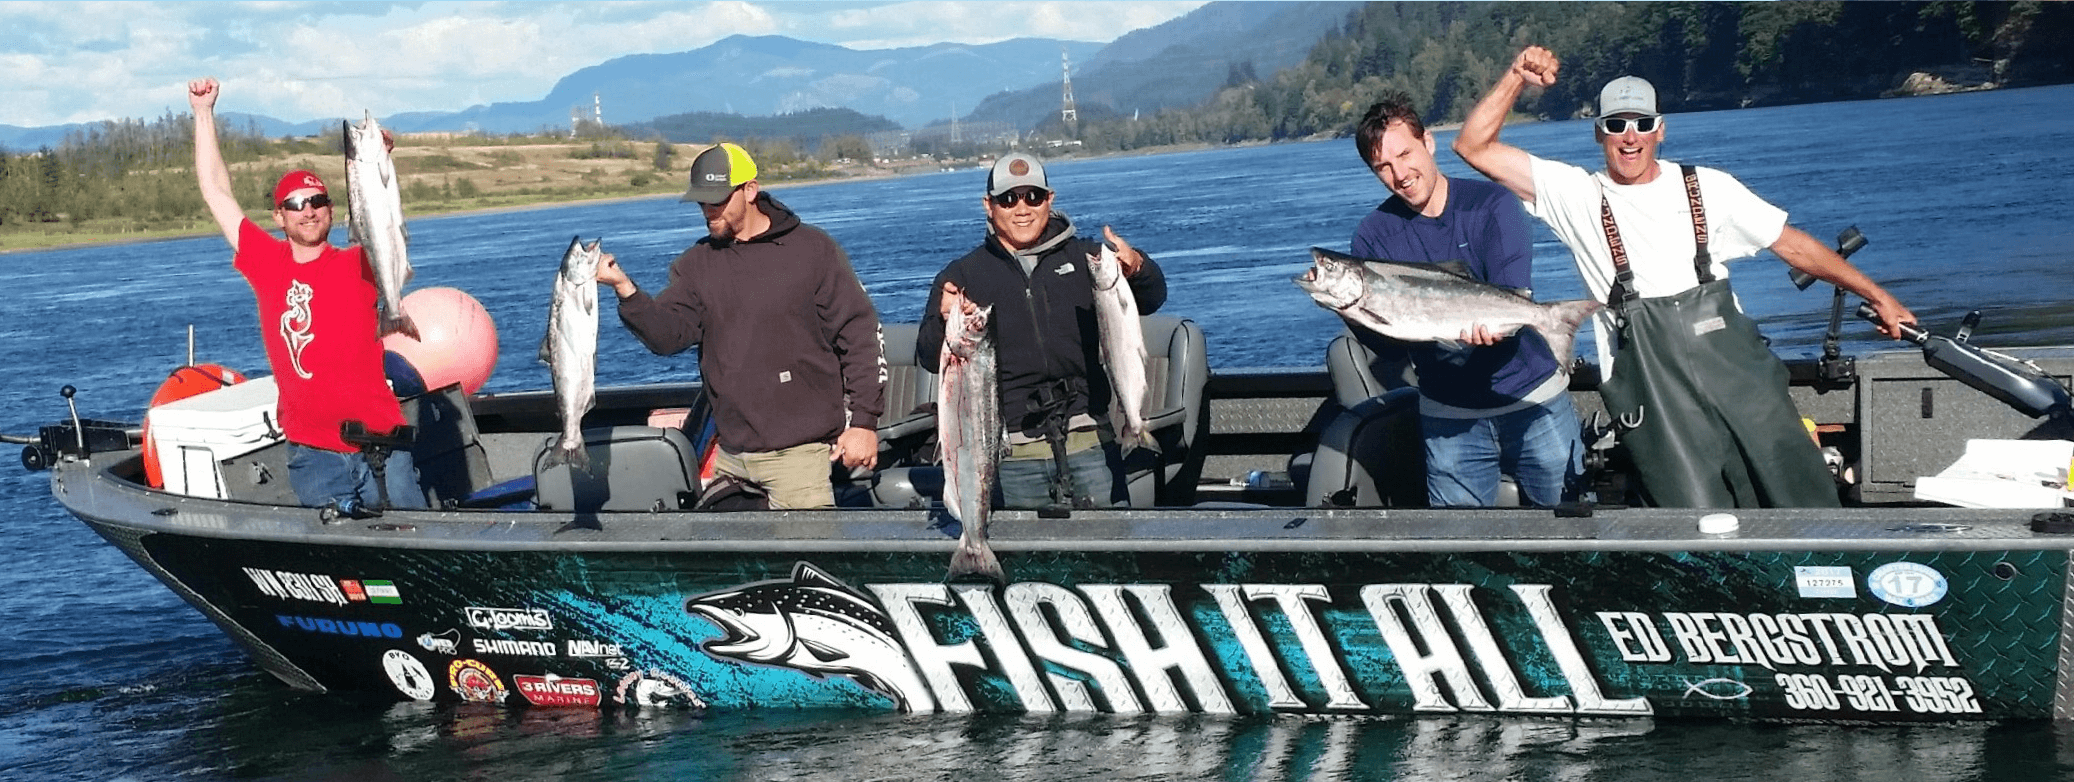 Five Men Standing In A Fishing Guide Boat Holding Up 5 Large Fish Caught In The Columbia River.